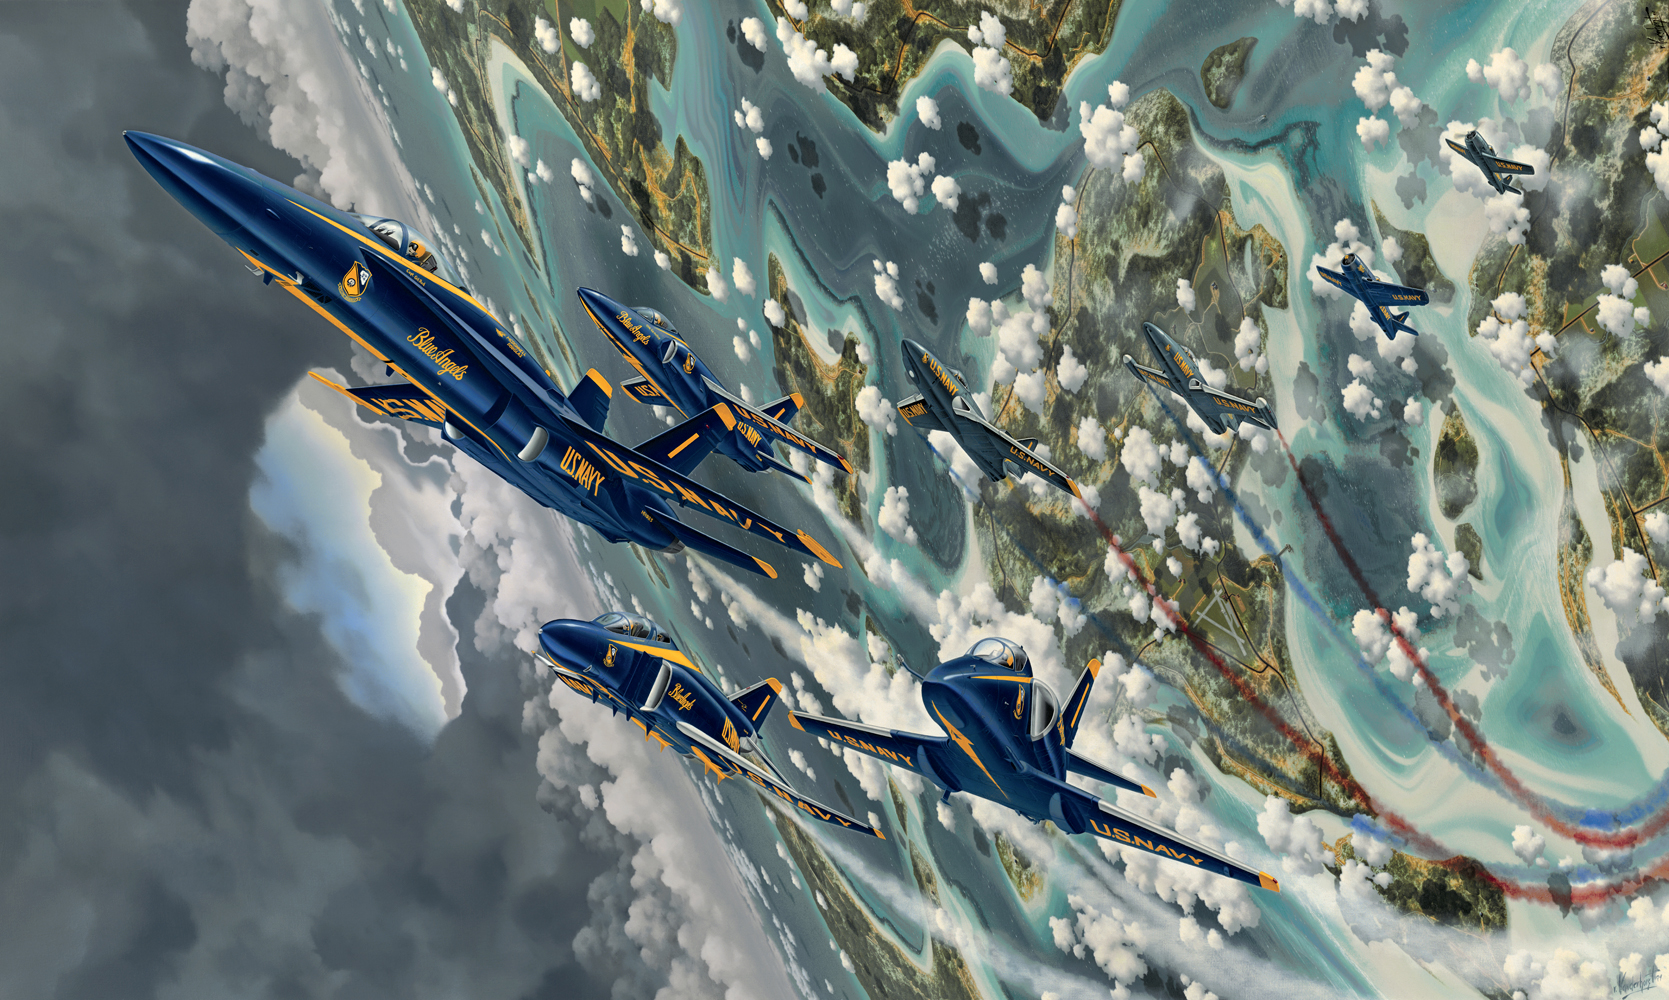 """12.    THE BLUE ANGELS    1995, 3' x 6', Oil on Canvas - Permanent art collection of the SMITHSONIAN AIR & SPACE MUSEUM, WASHINGTON, DC.    In 1995, with the assistance of Admiral Skip Furlong, former Vice President of the United States Naval Aviation Museum Foundation and Capt. Bob Rasmussen, former Director of the National Museum of Naval Aviation at NAS Pensacola, Florida, I created an oil painting celebrating the 50th. Anniversary of the Blue Angels. The painting depicts all eight of the aircraft used by the Blues since their inception in 1946. Cdr. Butch Voris originated the Blue Angels and flew the first F6F Hellcat for the team in 1946. He also named the new Navy flight demonstration team after a night club in New York City called """"The Blue Angel"""".After completion in 1995/96, the painting went on display in the Atrium of the United States National Museum of Naval Aviation at NAS Pensacola, Florida for 2 1/2 years.    The painting has been acquired by the Smithsonian Air & Space Museum in Washington DC."""